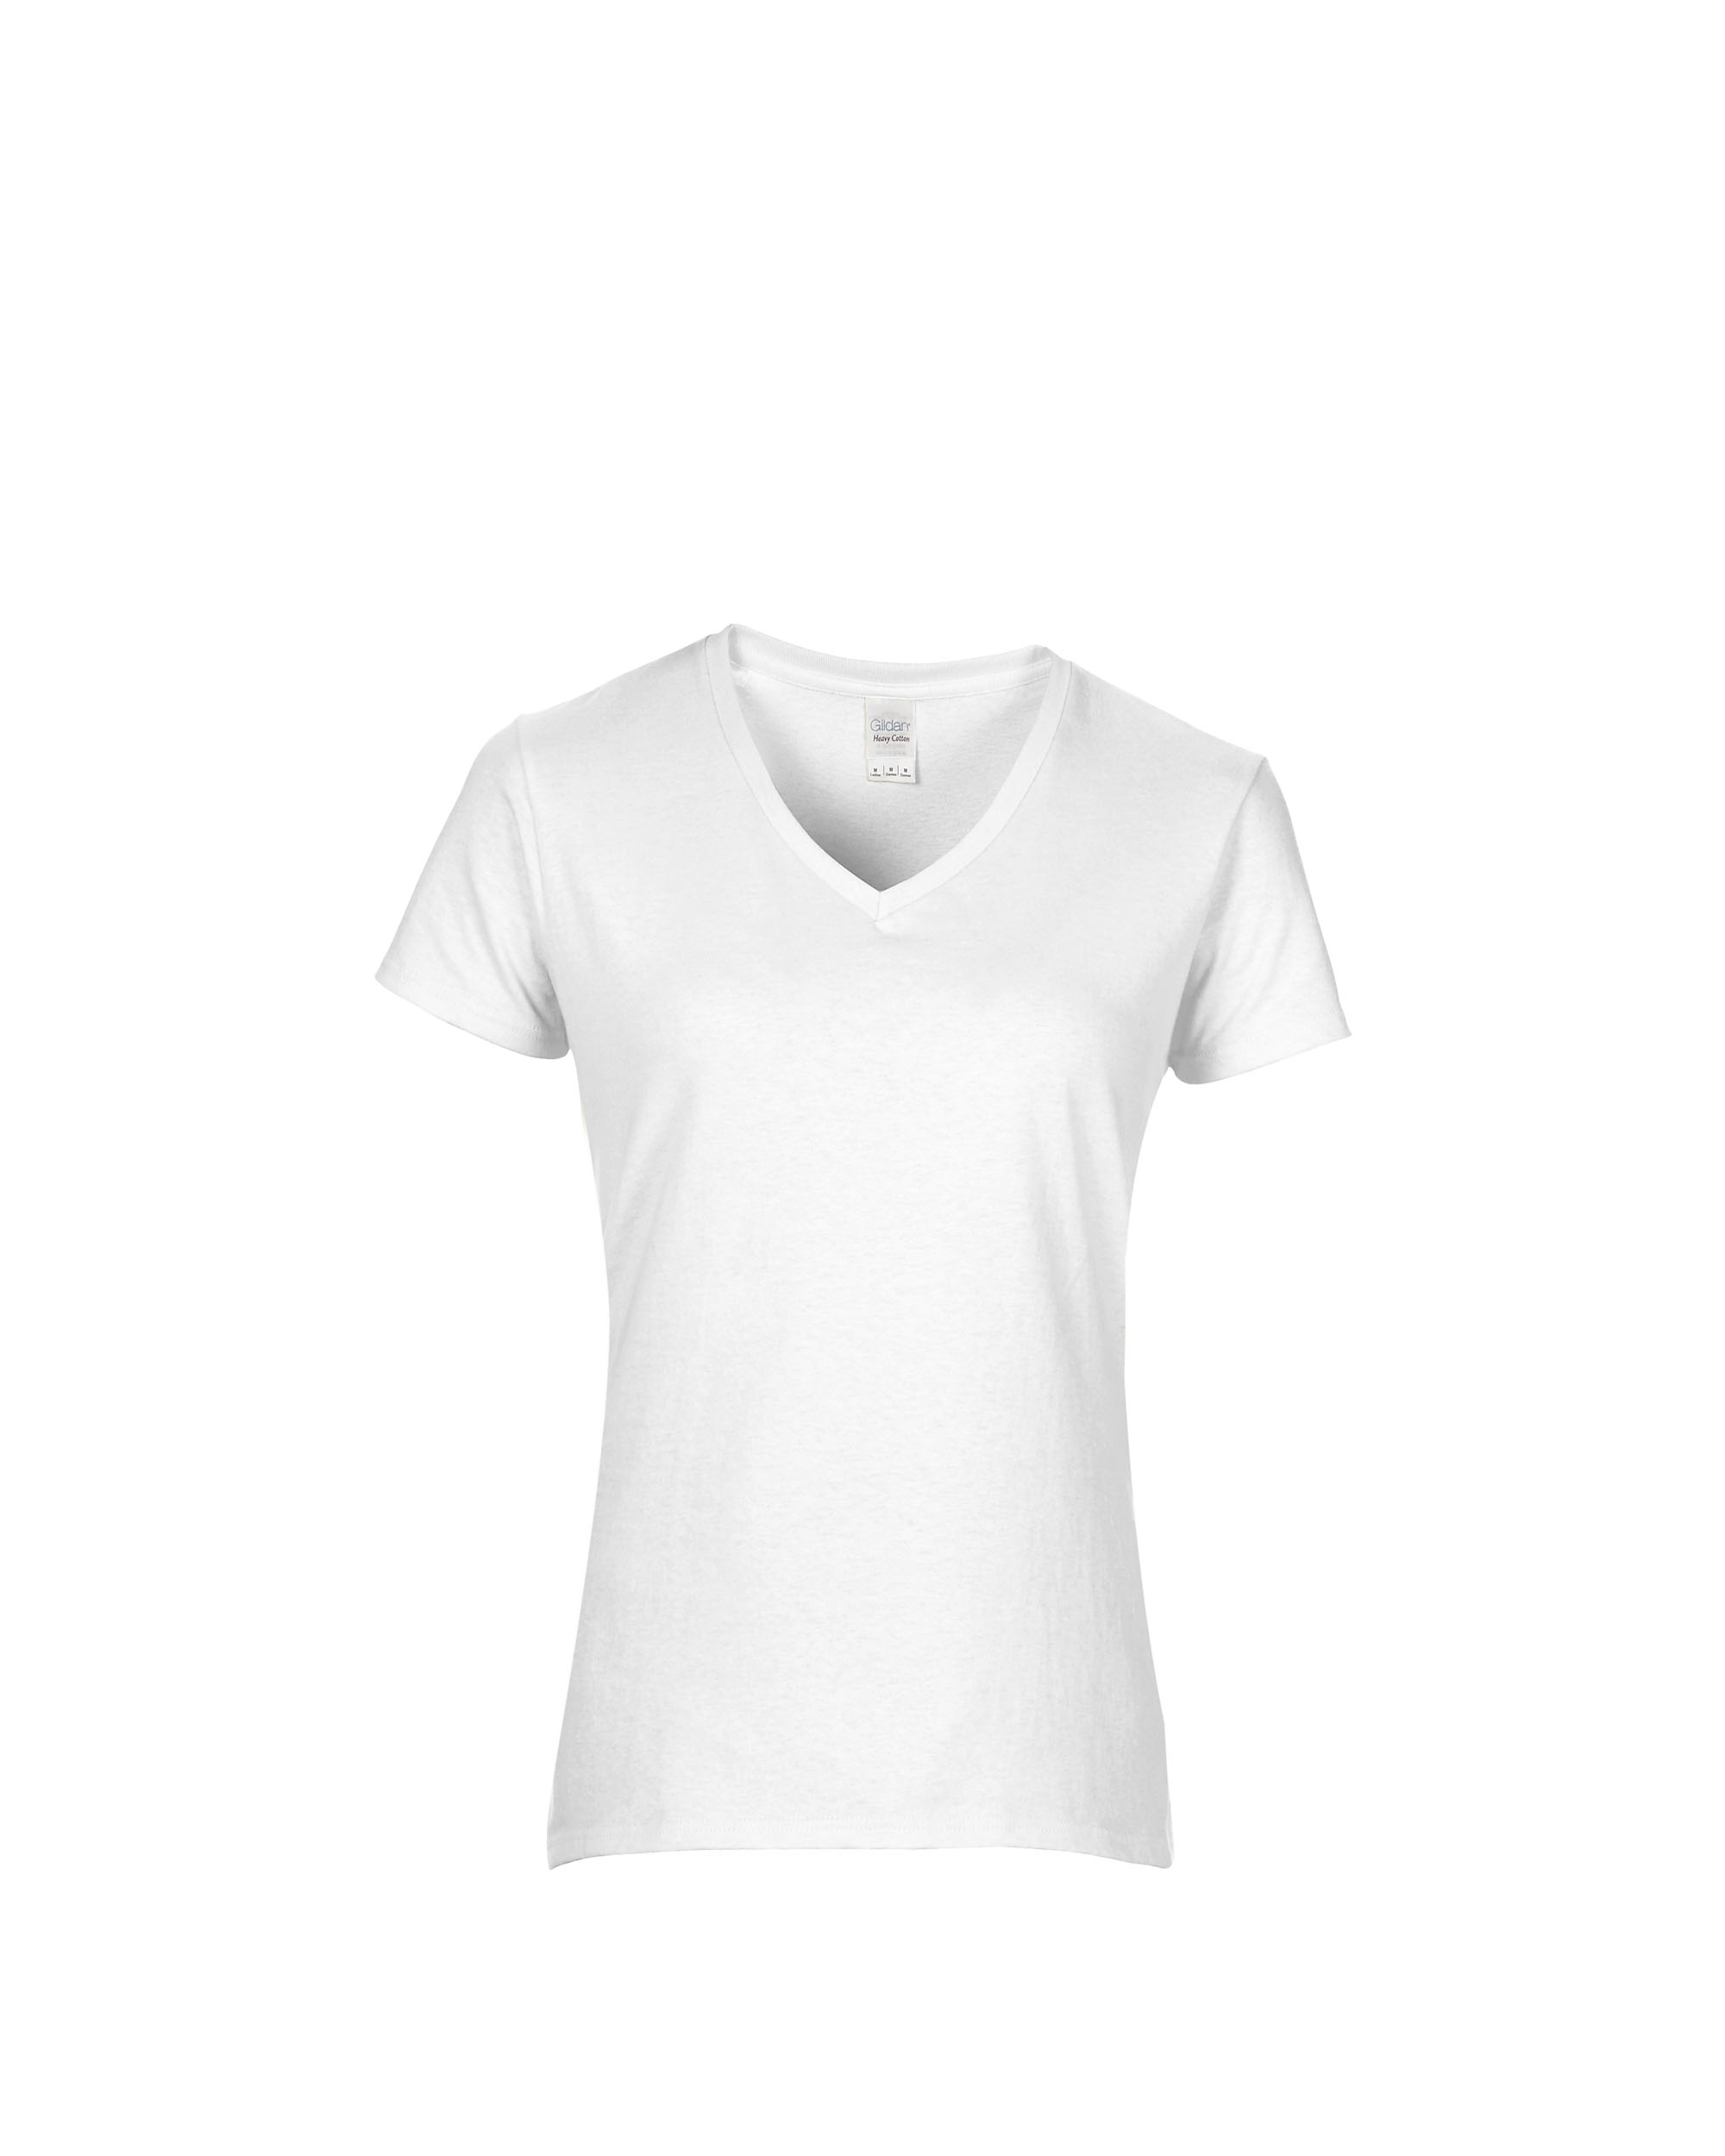 224c17289e Gildan Heavy Cotton™ Ladies' 5.3 oz. V‑Neck T‑Shirt - Team Shirt Pros